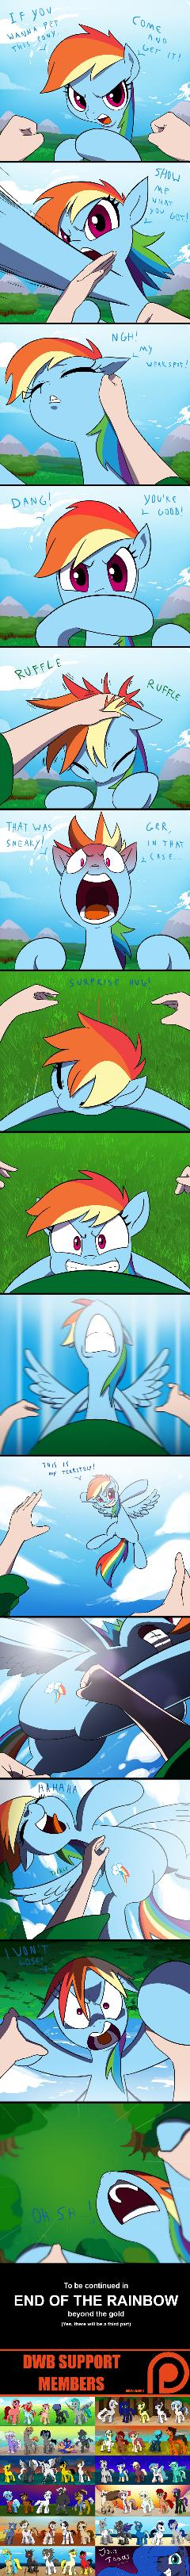 Rainbow Dash Simulator Part 2